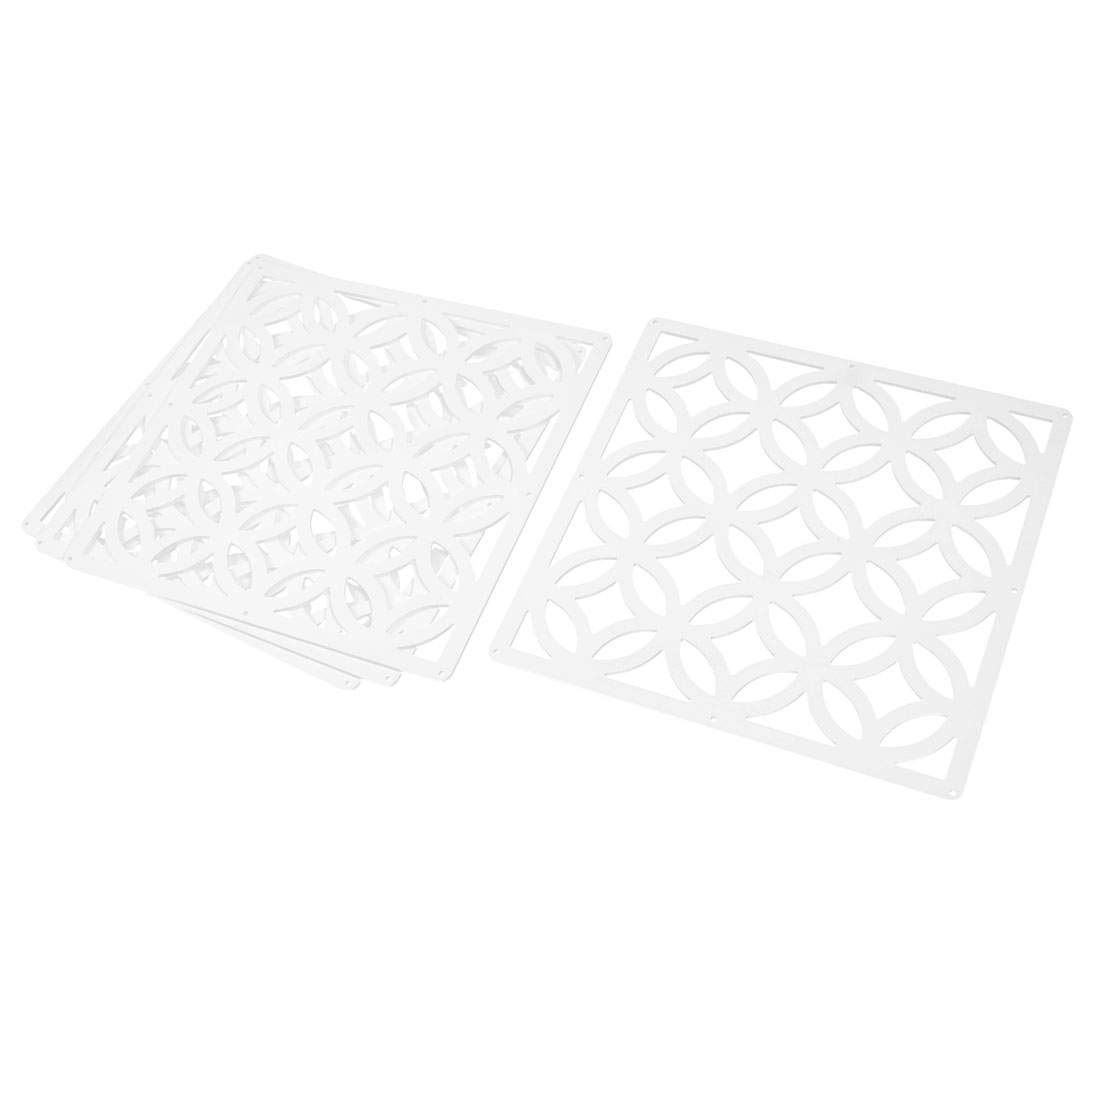 Home Wall Square Shaped Room Partition Panel Hanging Screen White 39 x 39cm 4pcs